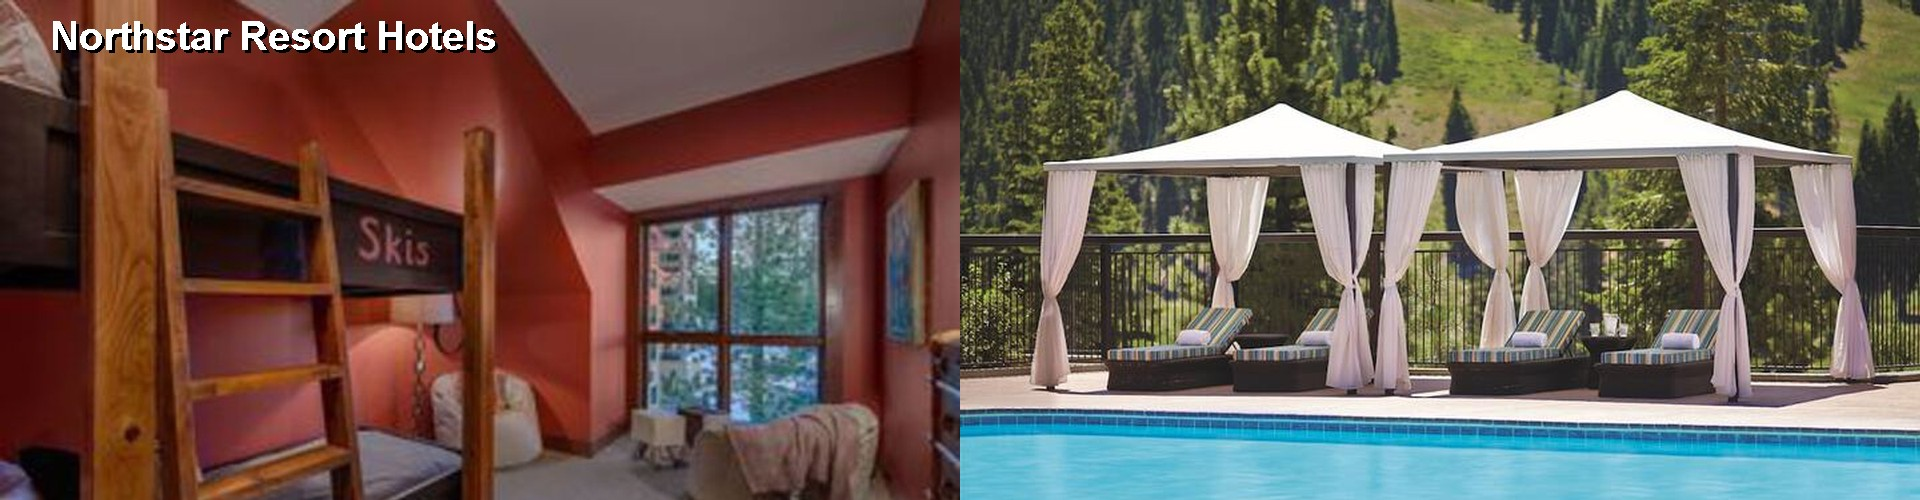 5 Best Hotels near Northstar Resort